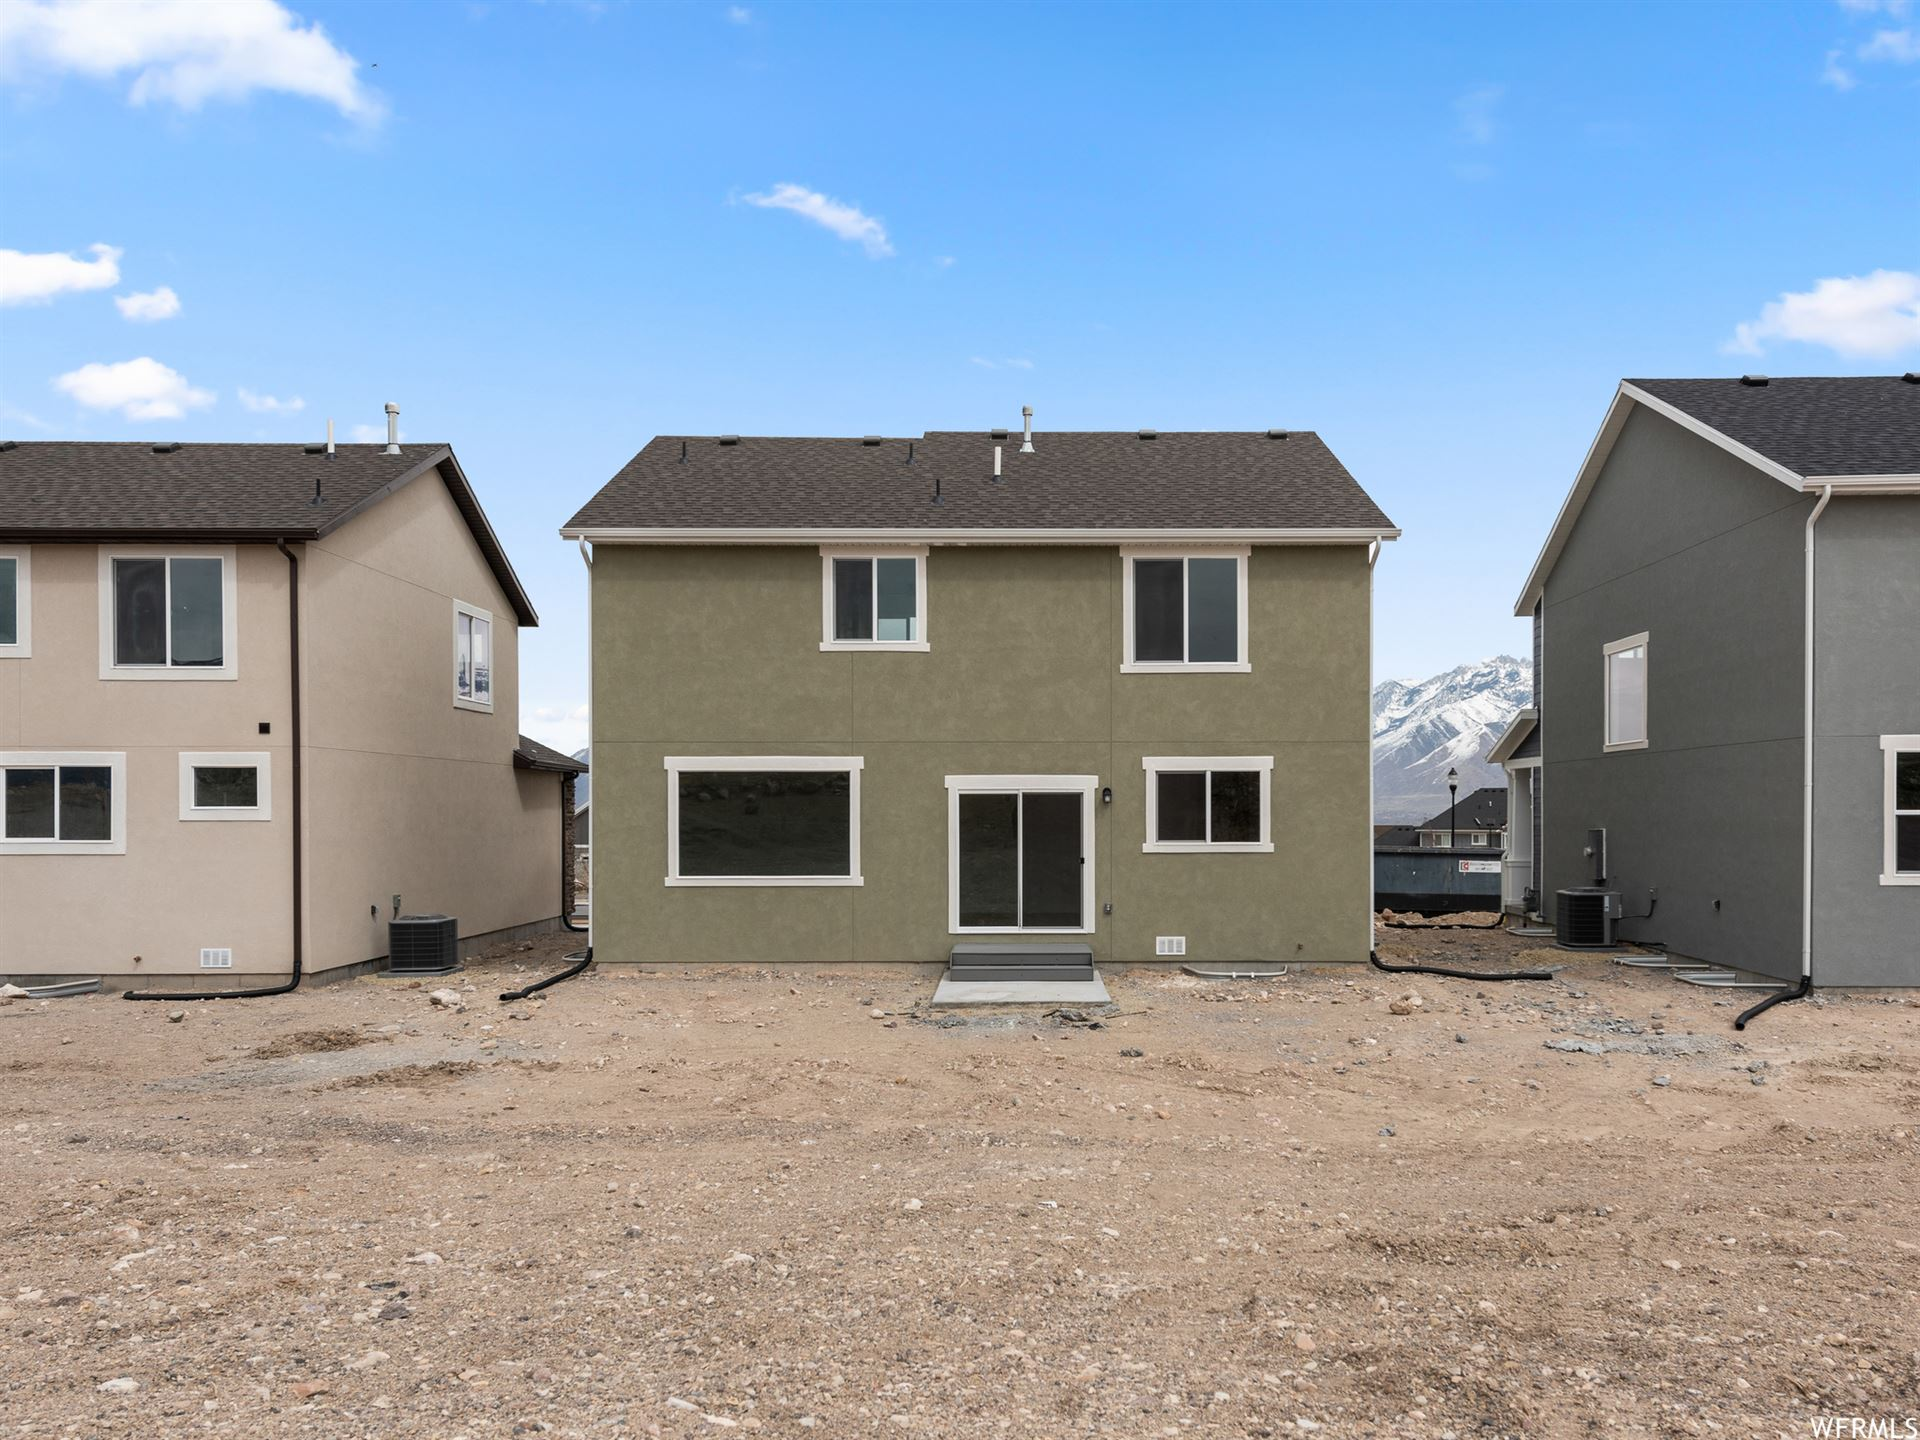 Photo of 1113 S RAINTREE LN #140, Santaquin, UT 84655 (MLS # 1684595)